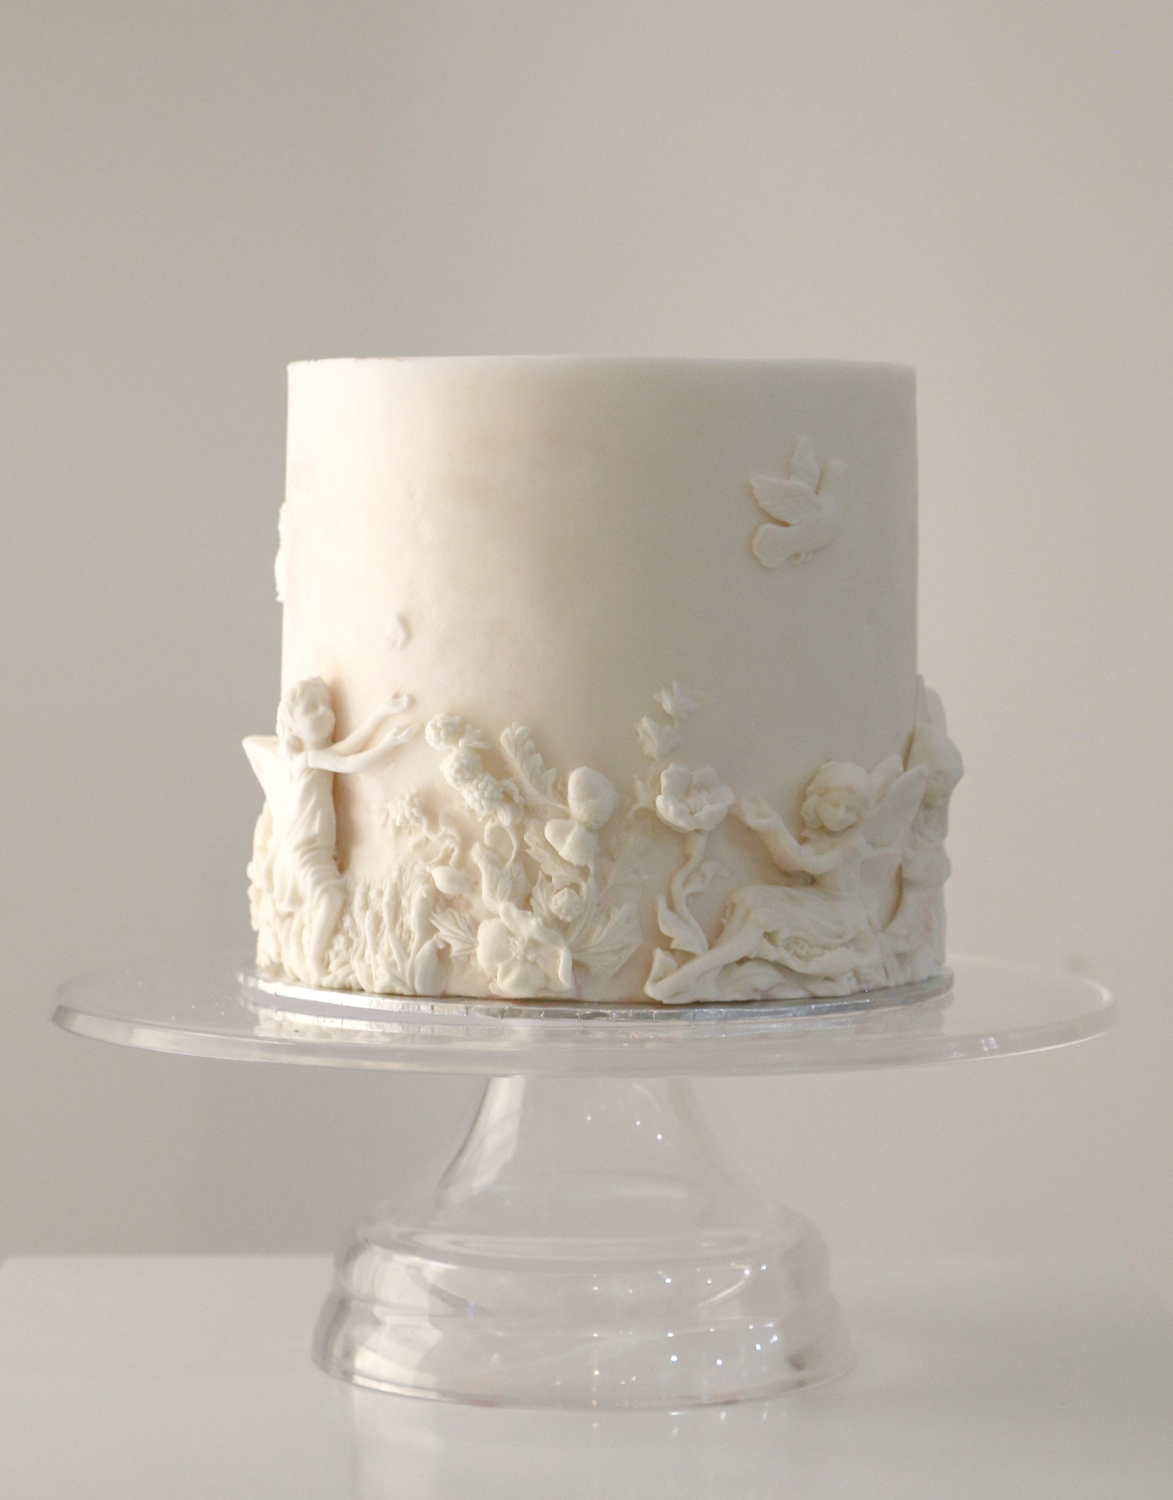 White mini cake with bas relief texture